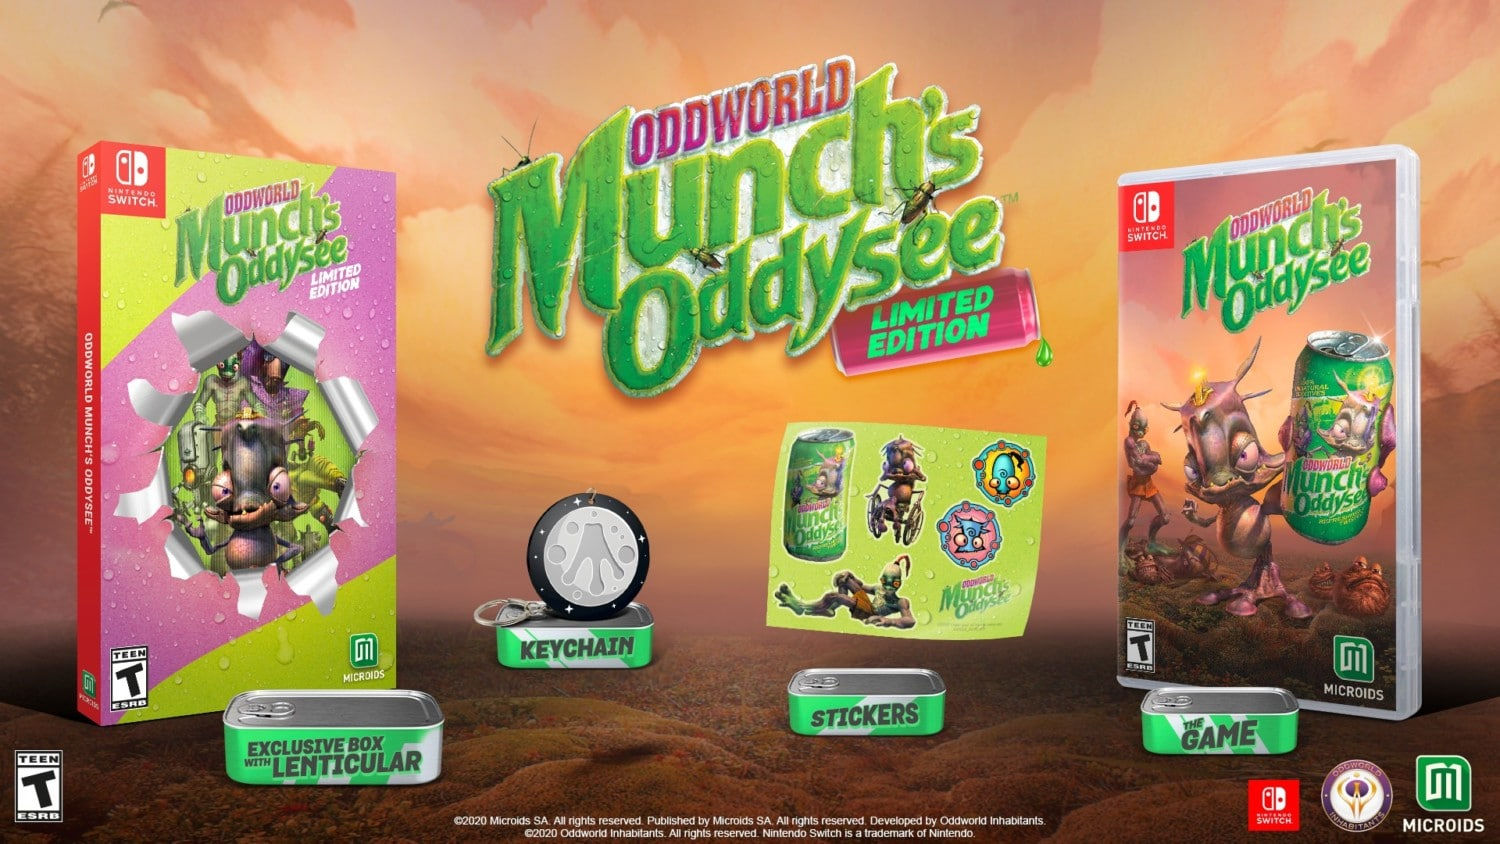 Oddworld: Munch's Oddysee Limited Edition is arriving August 25